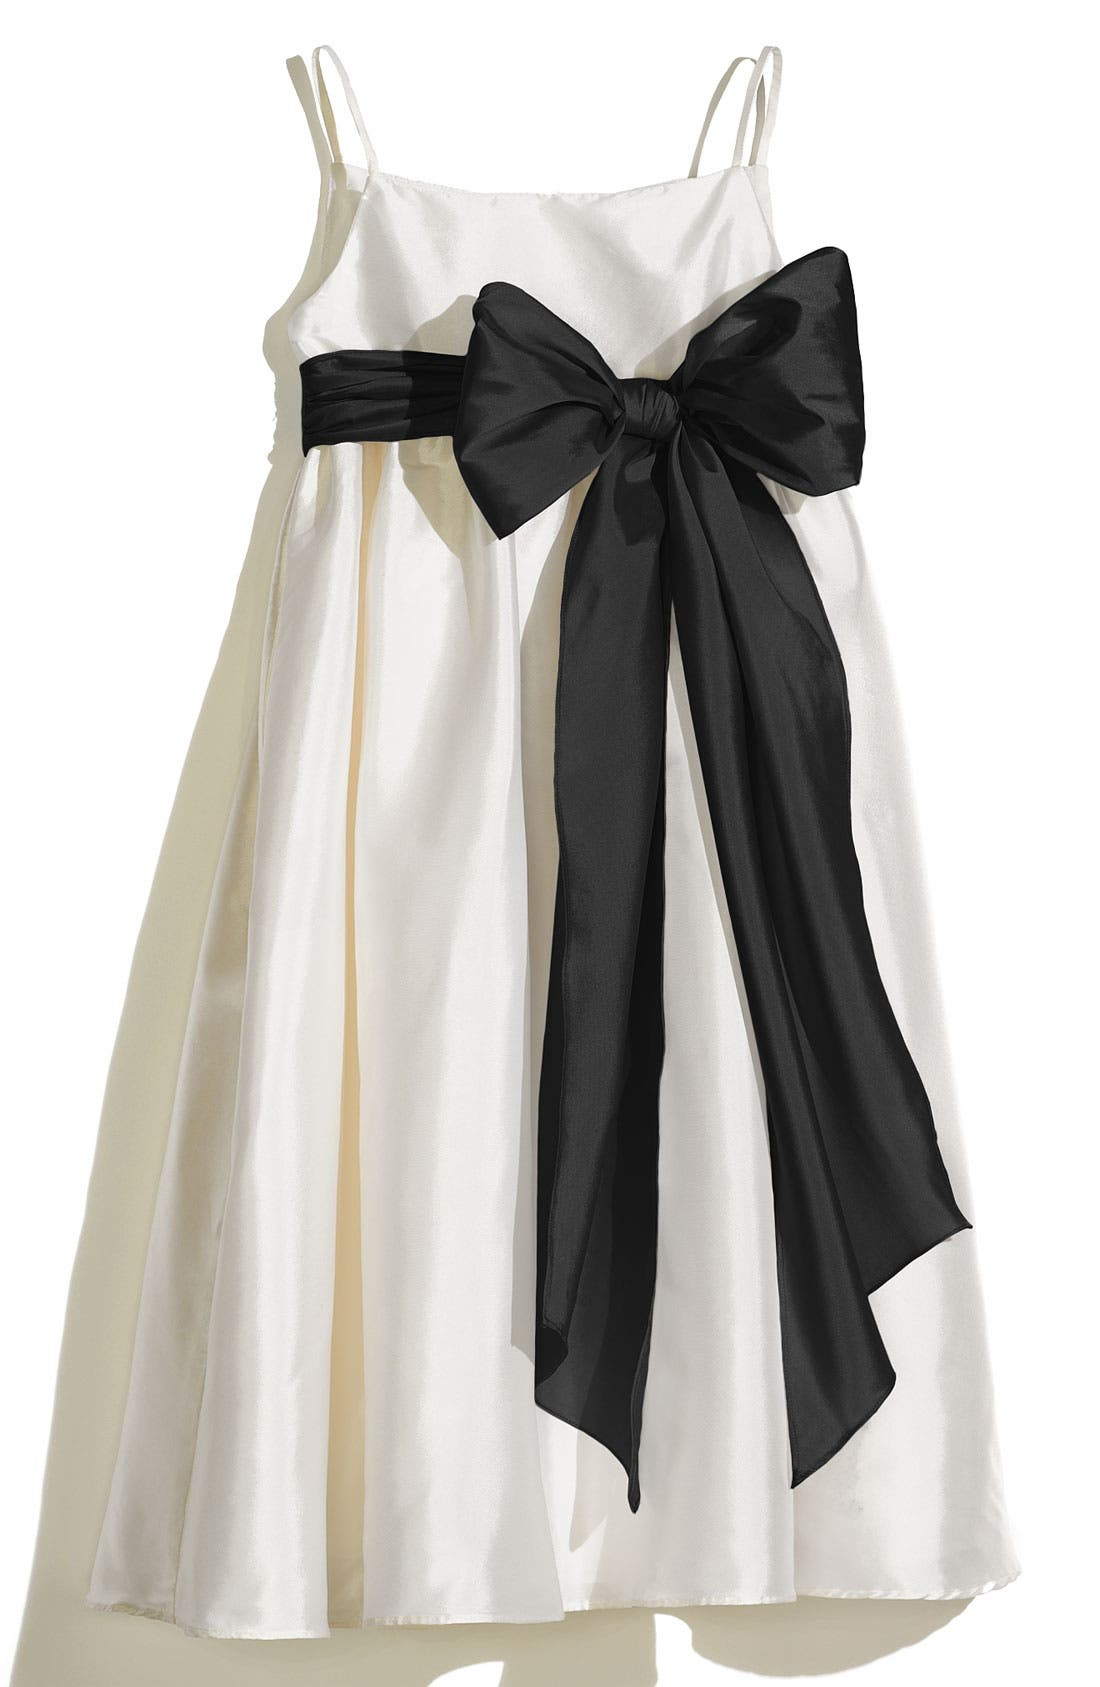 A-Line Dress with Sash,                             Main thumbnail 1, color,                             IVORY/ BLACK